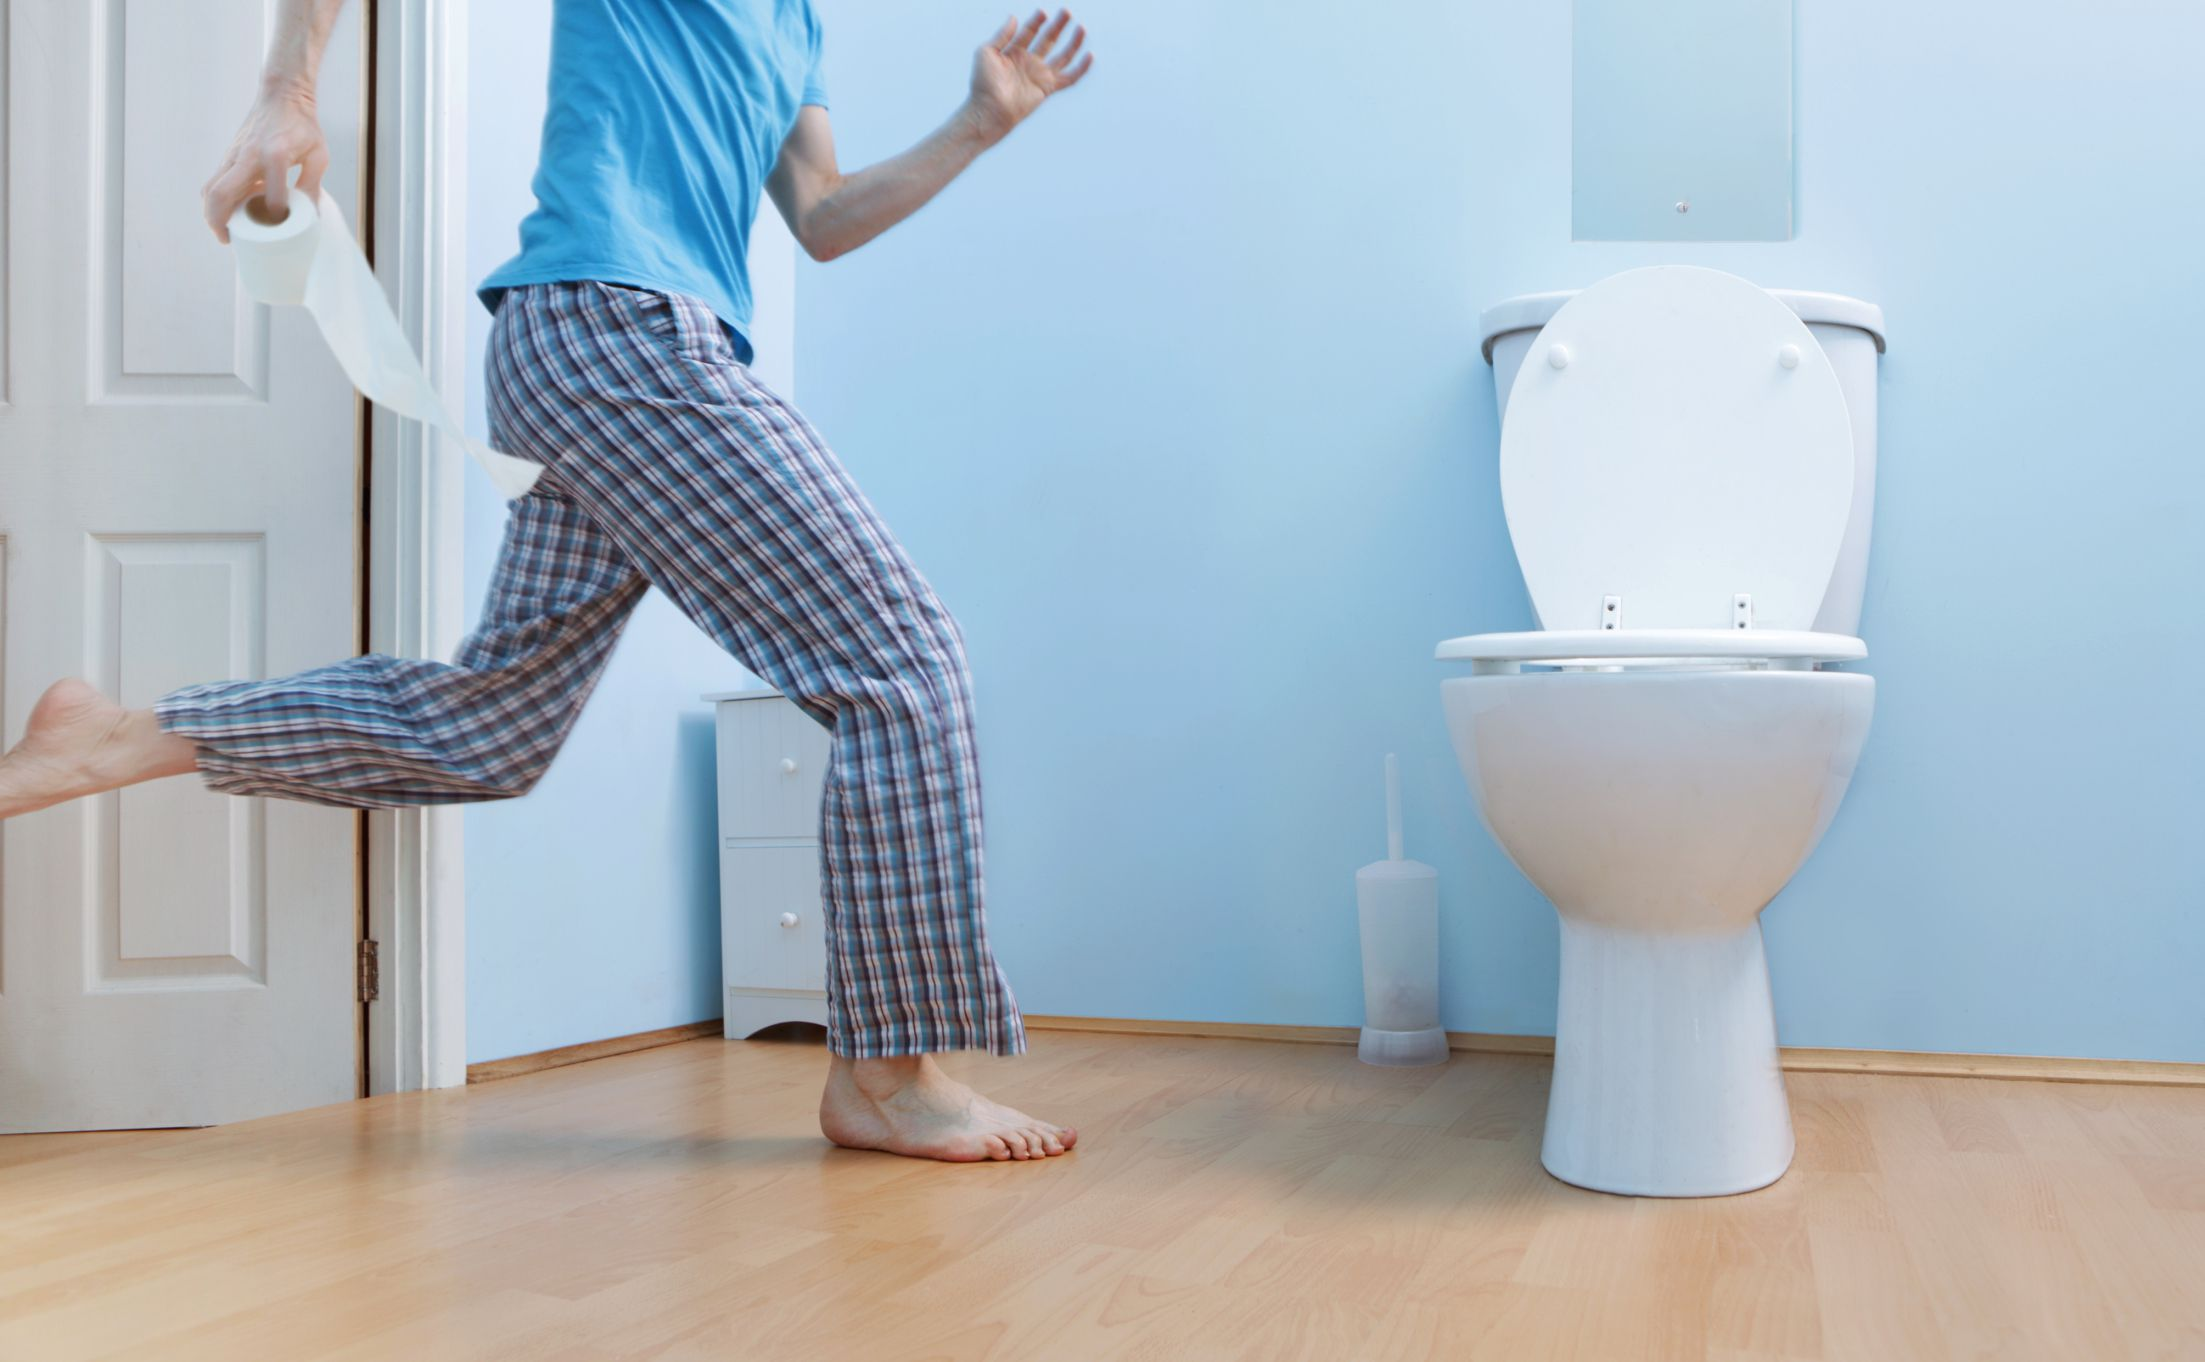 Green Poop: What Does It Mean If Your Stool Is Green?